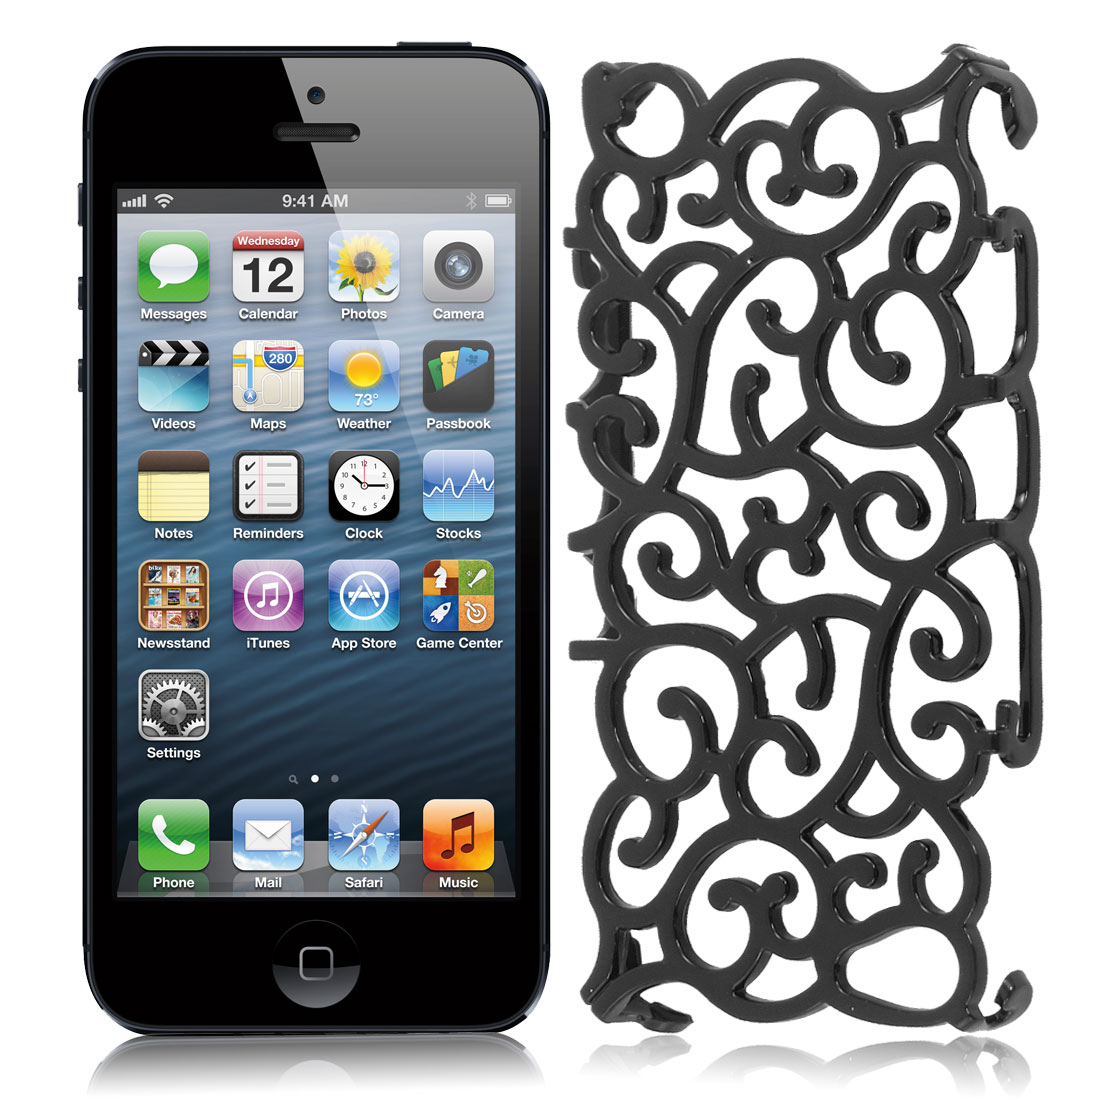 Black Hollow Out Palace Flower Hard Back Cover Case for iPhone 5 5G